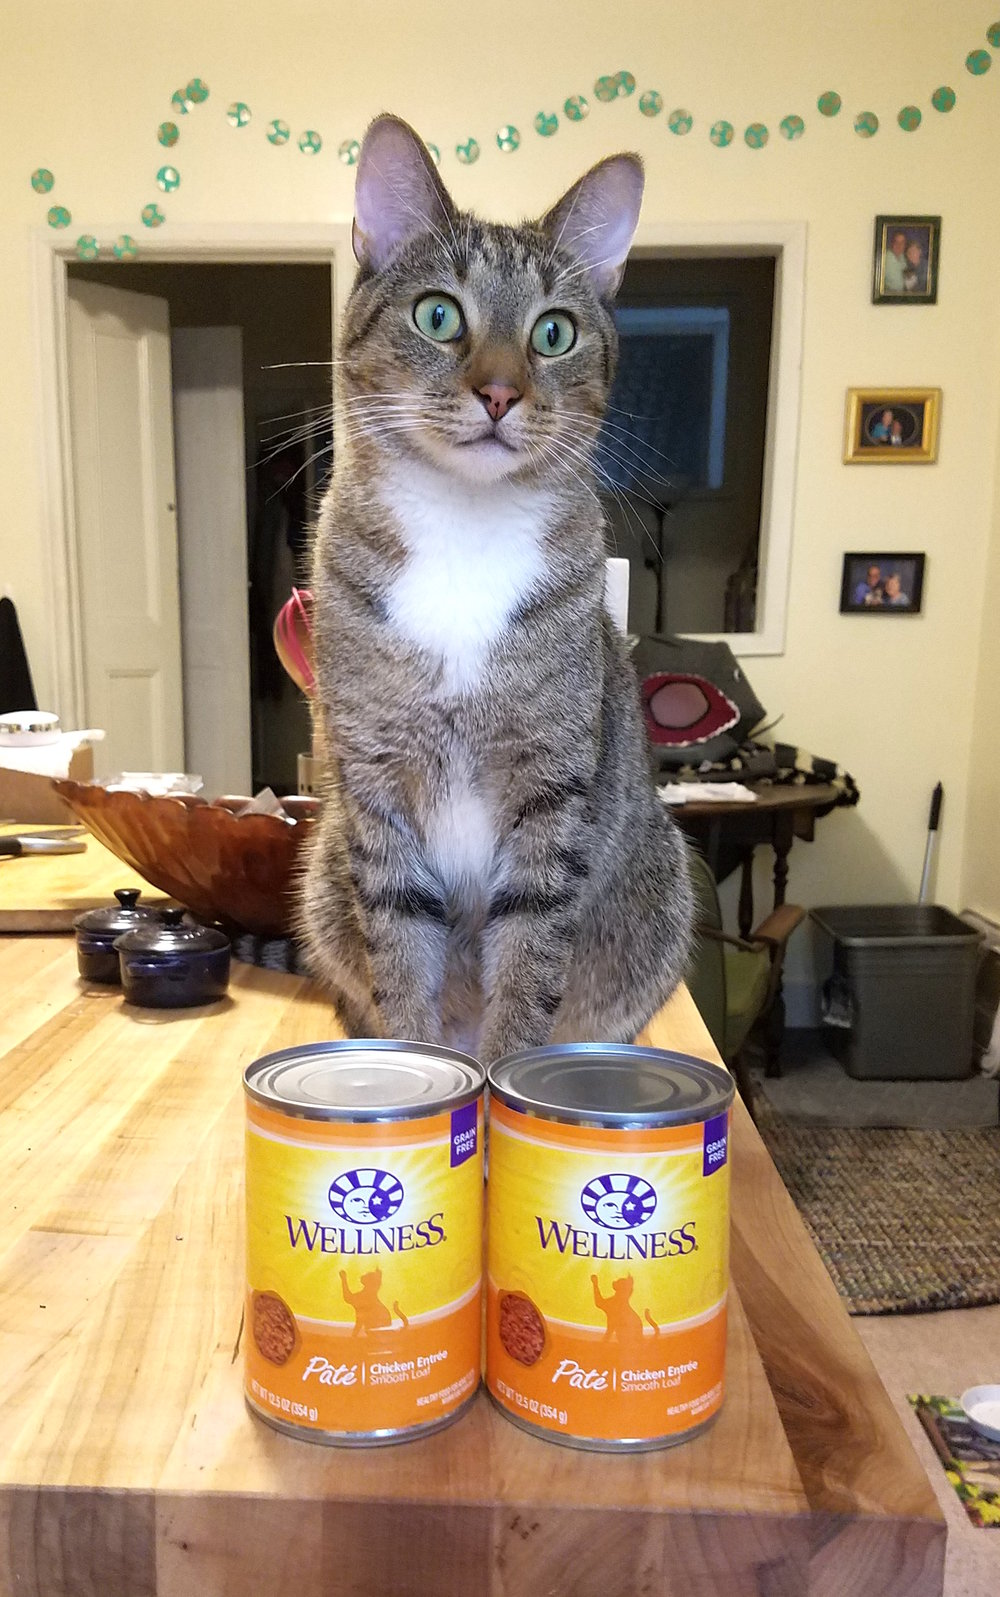 For the love of Pete - can someone with a can opener help a brotha out?!